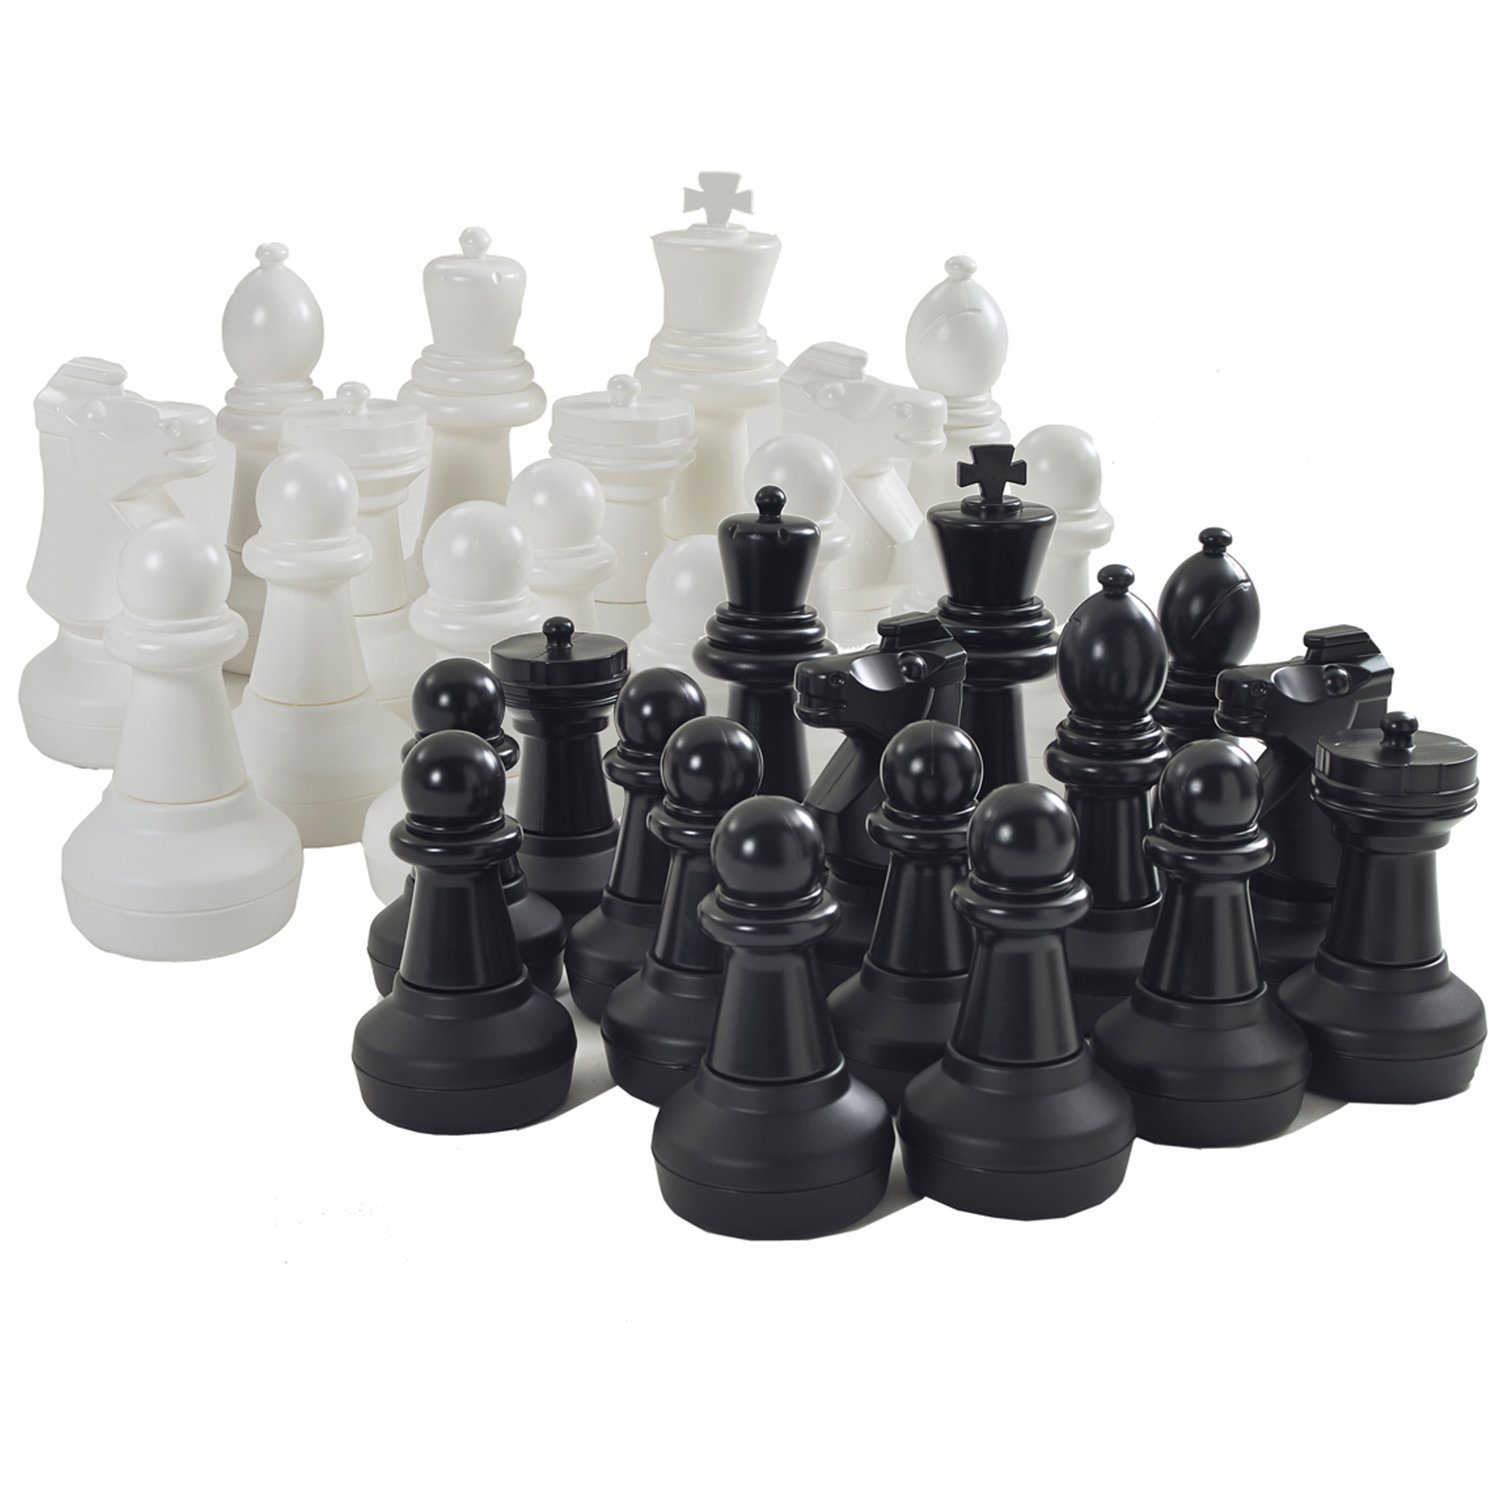 Garden Games Giant Chess Set Pieces, King Measures 64 Centimetres Tall, Base is 23 Centimetres in Diameter